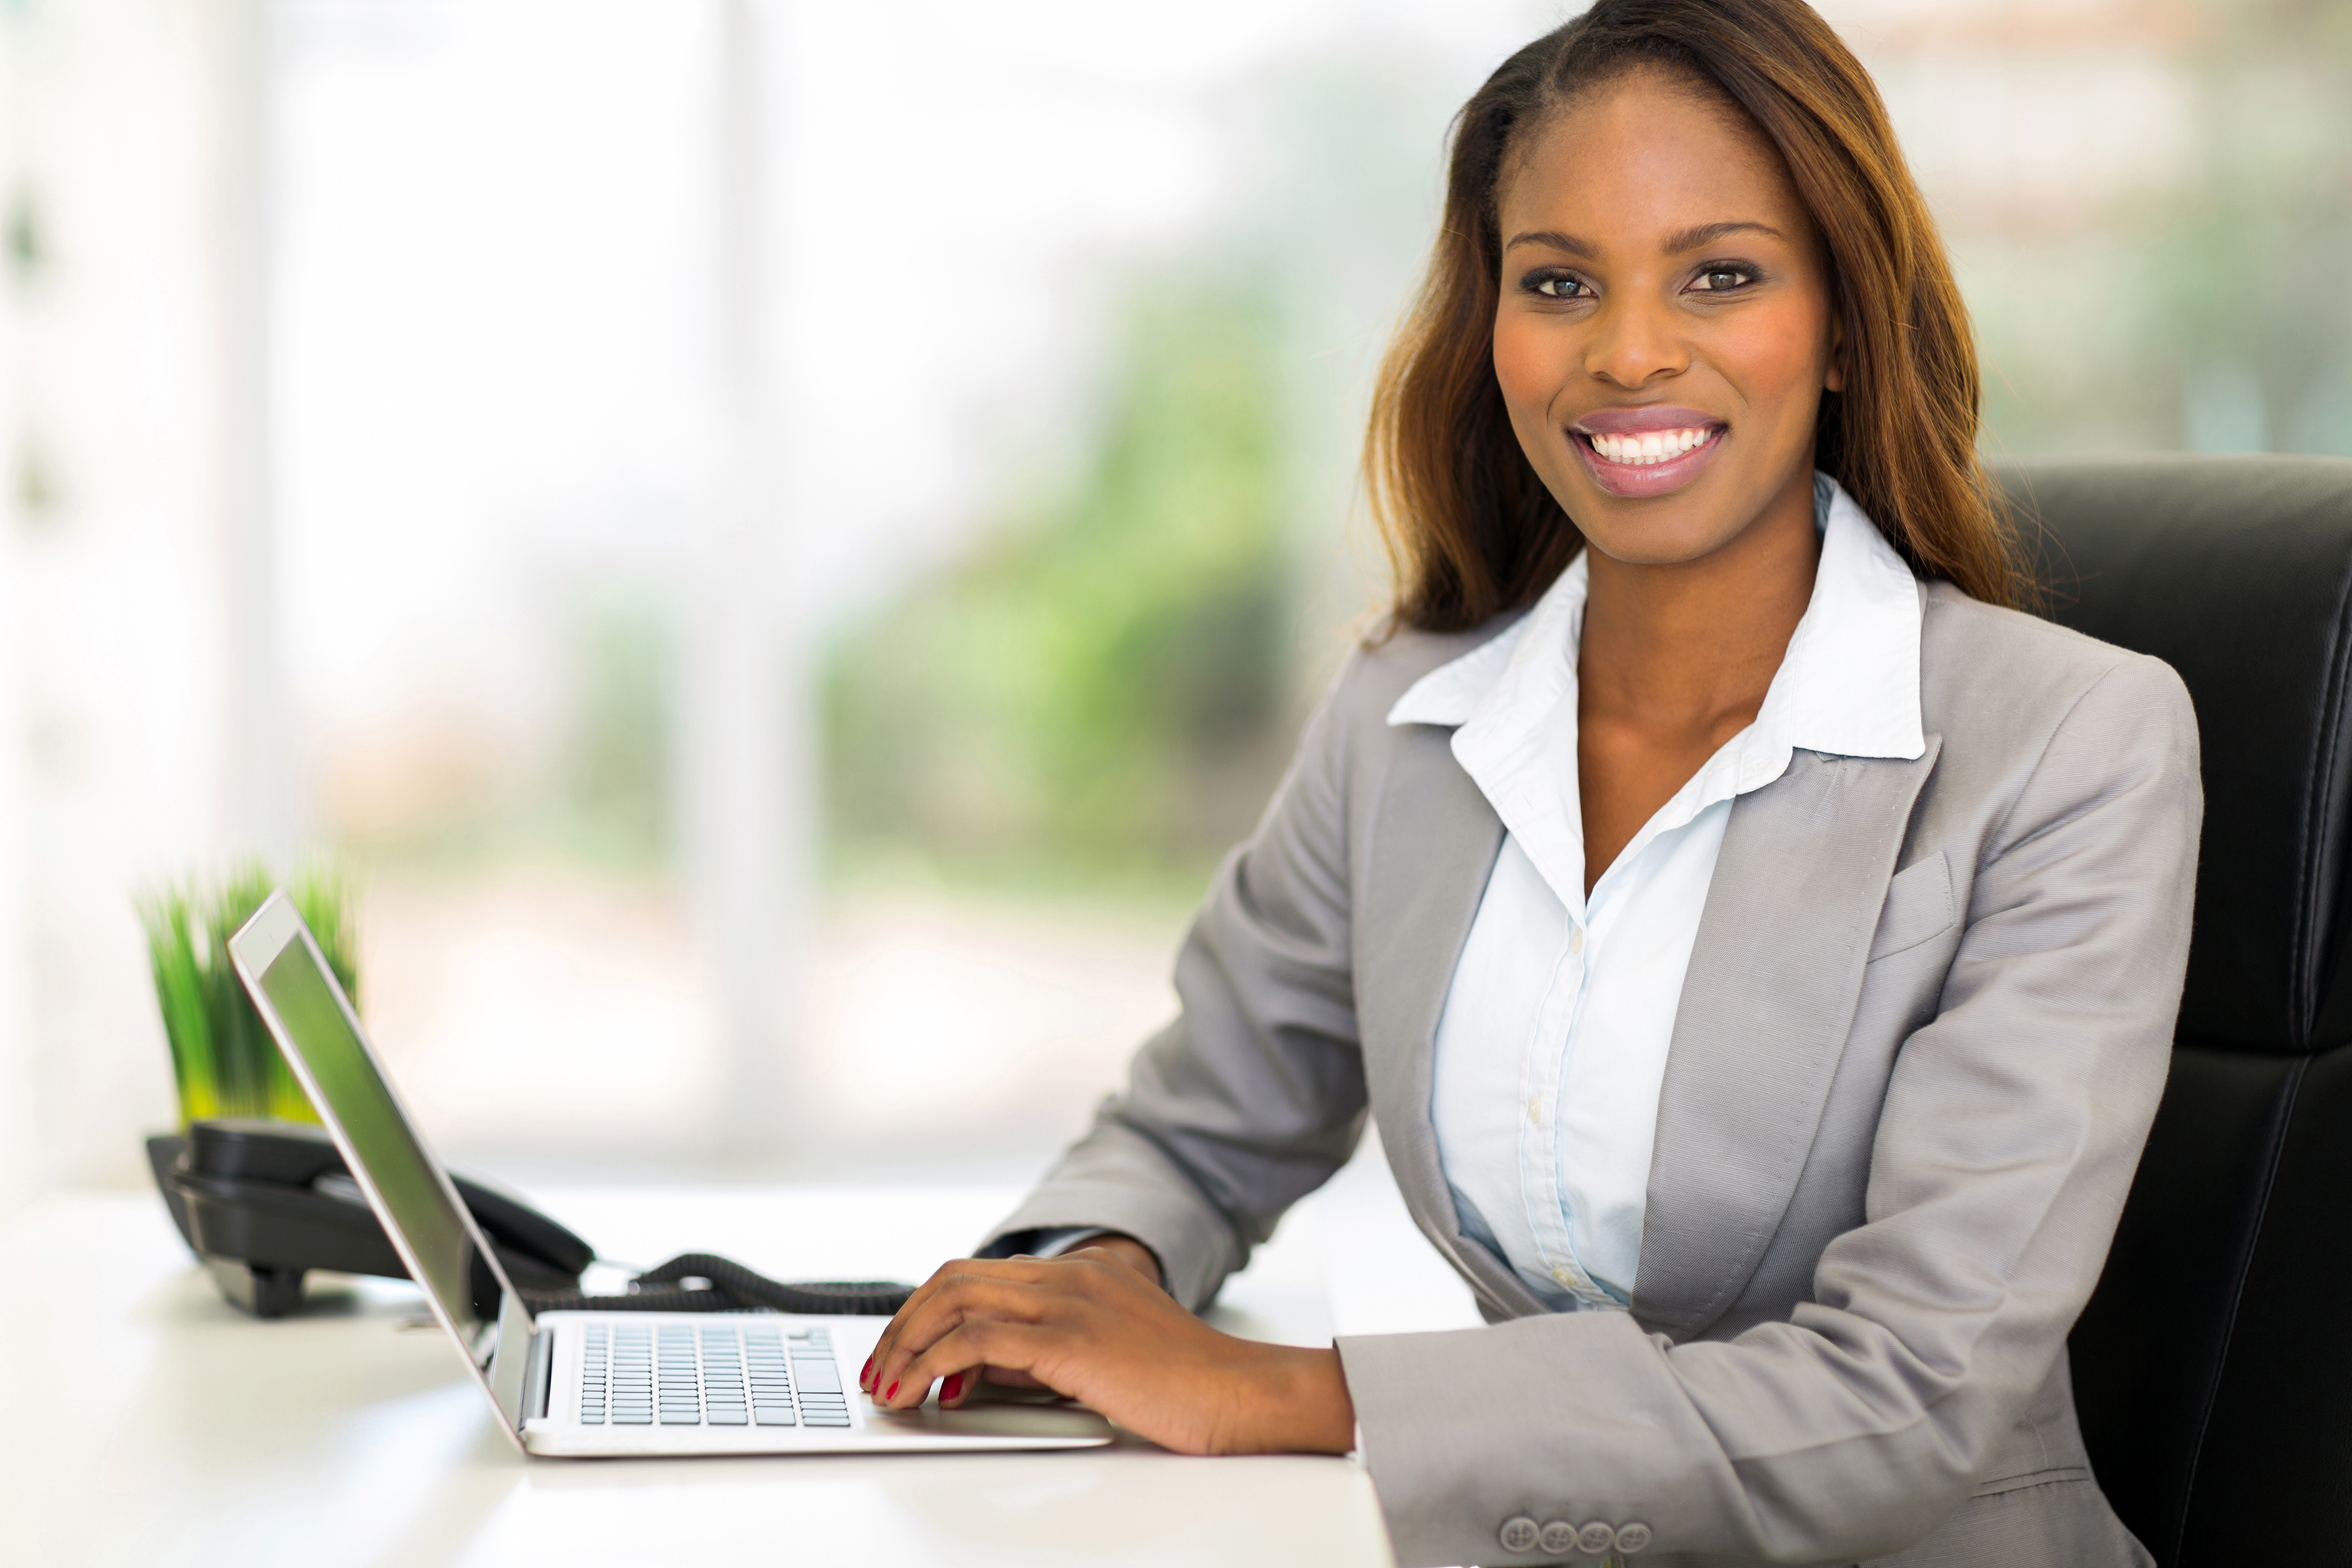 men or women who make better Women are rated better than men as leaders, and not just because of women's nurturing skills, such as developing others and building relationships female leaders were rated better on all levels .